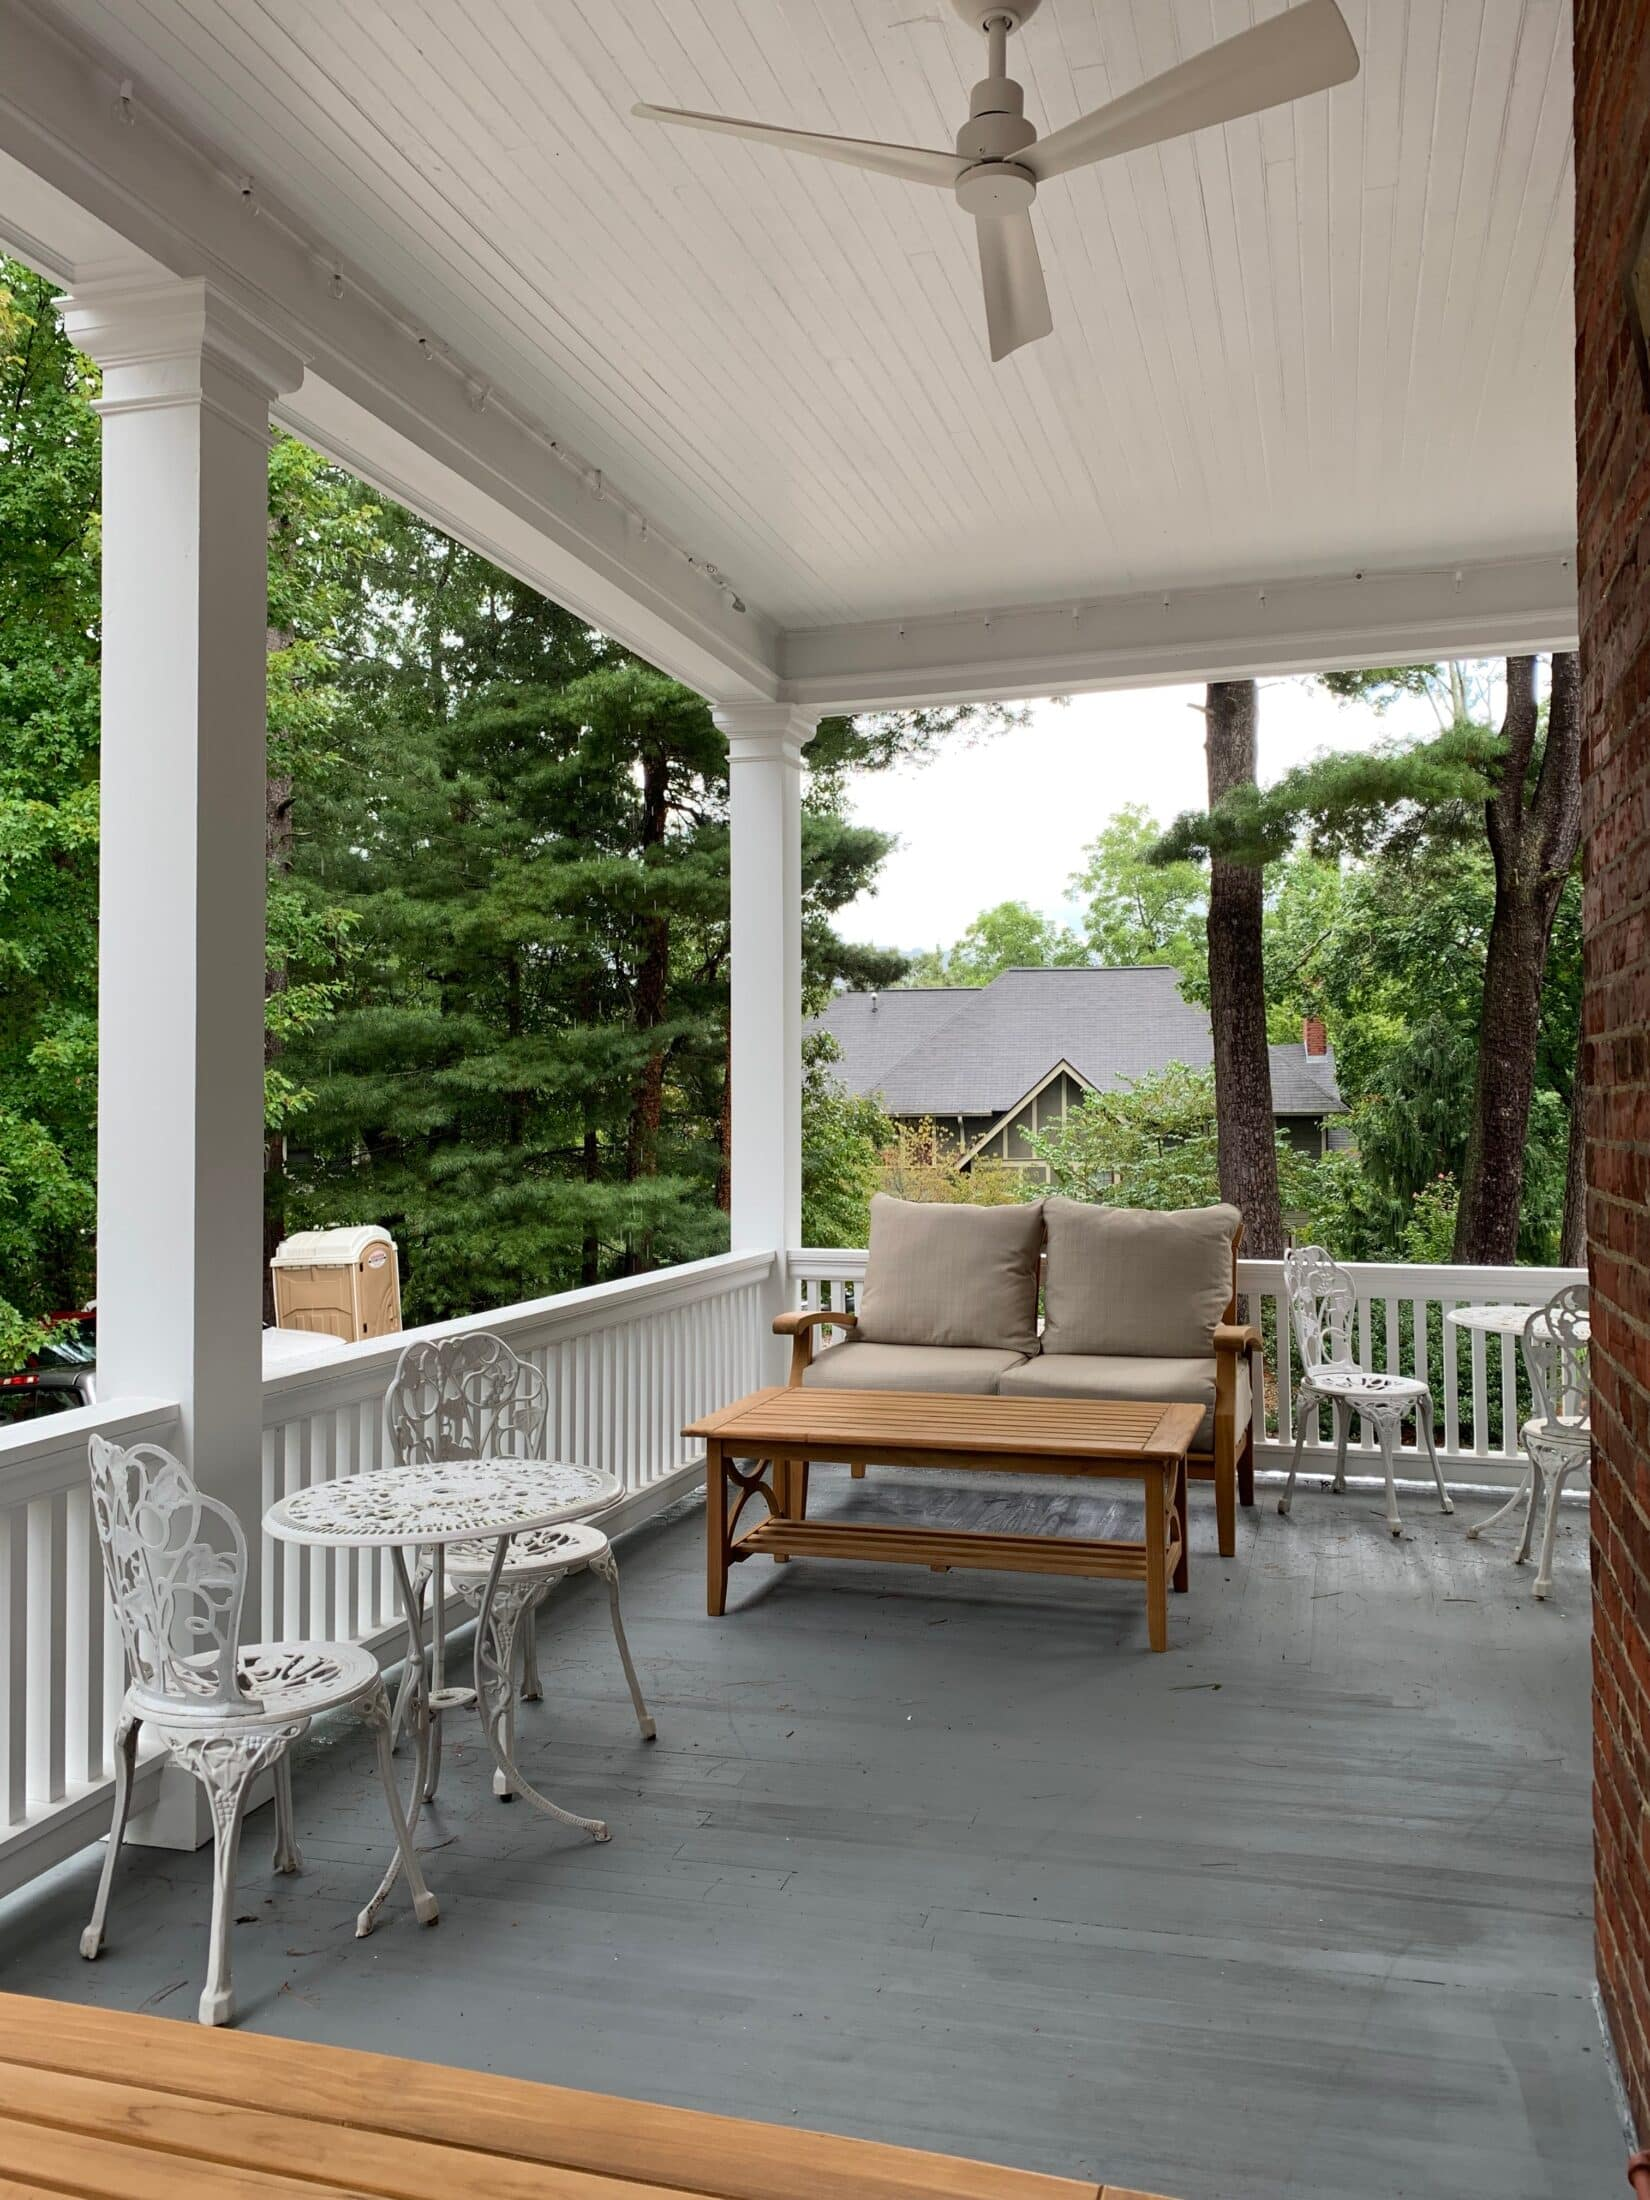 APPLEWOOD PORCHES, The Applewood Manor